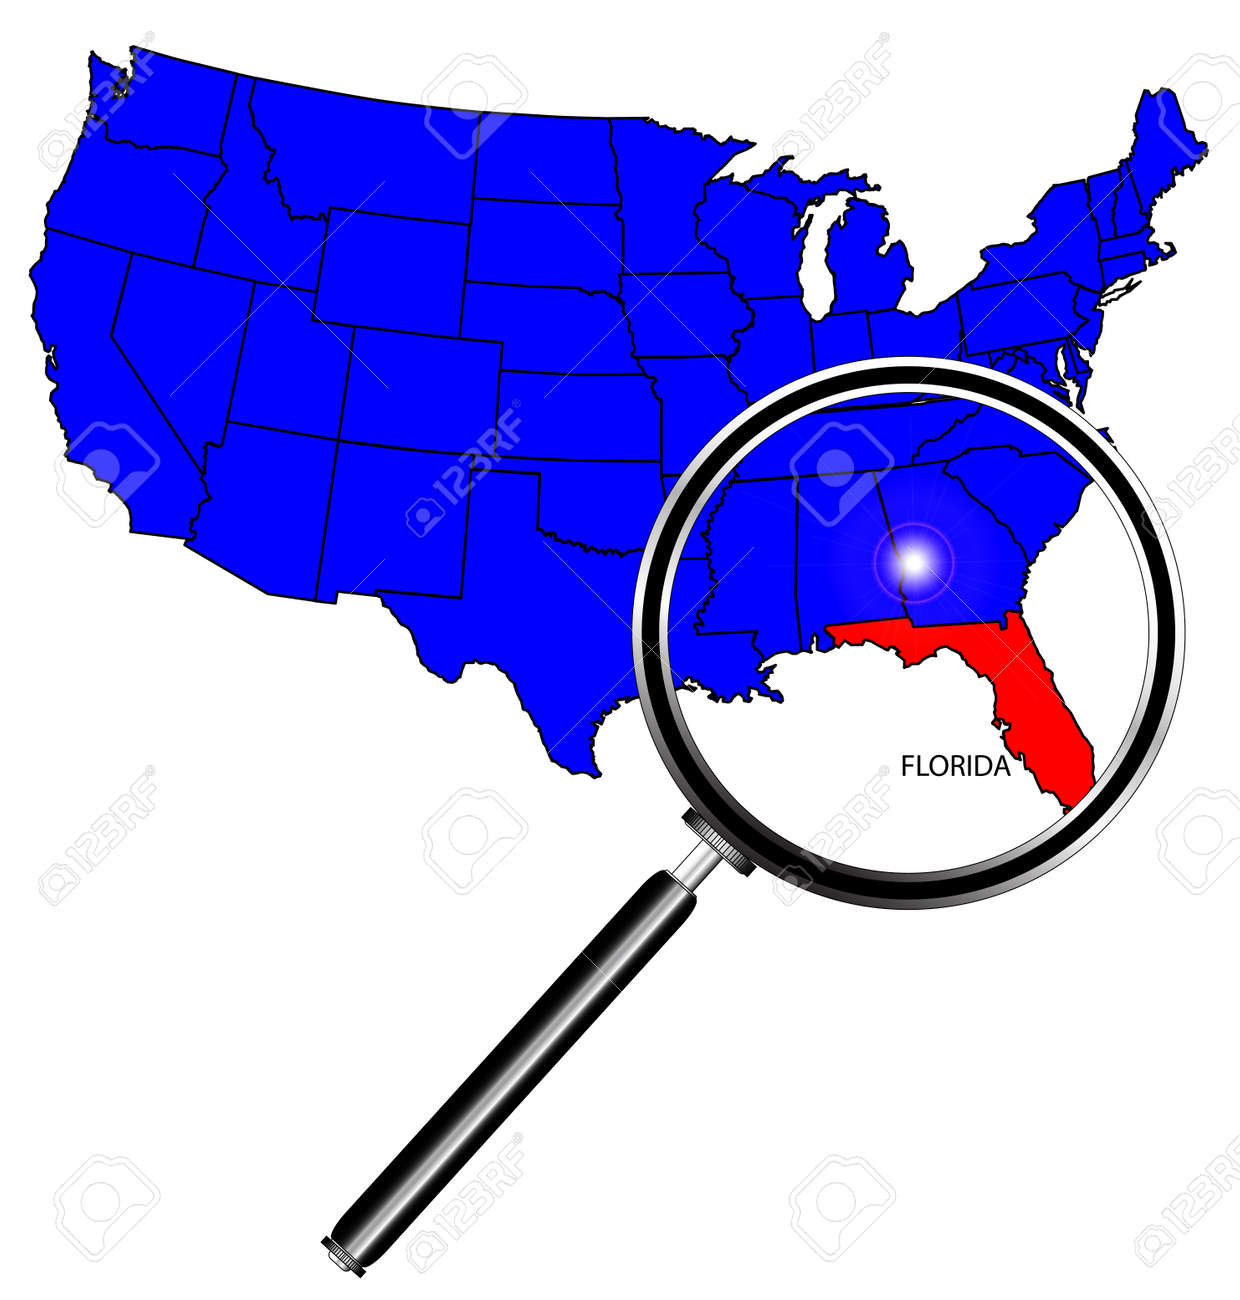 florida state outline set into a map of the united states of america with magnifying glass